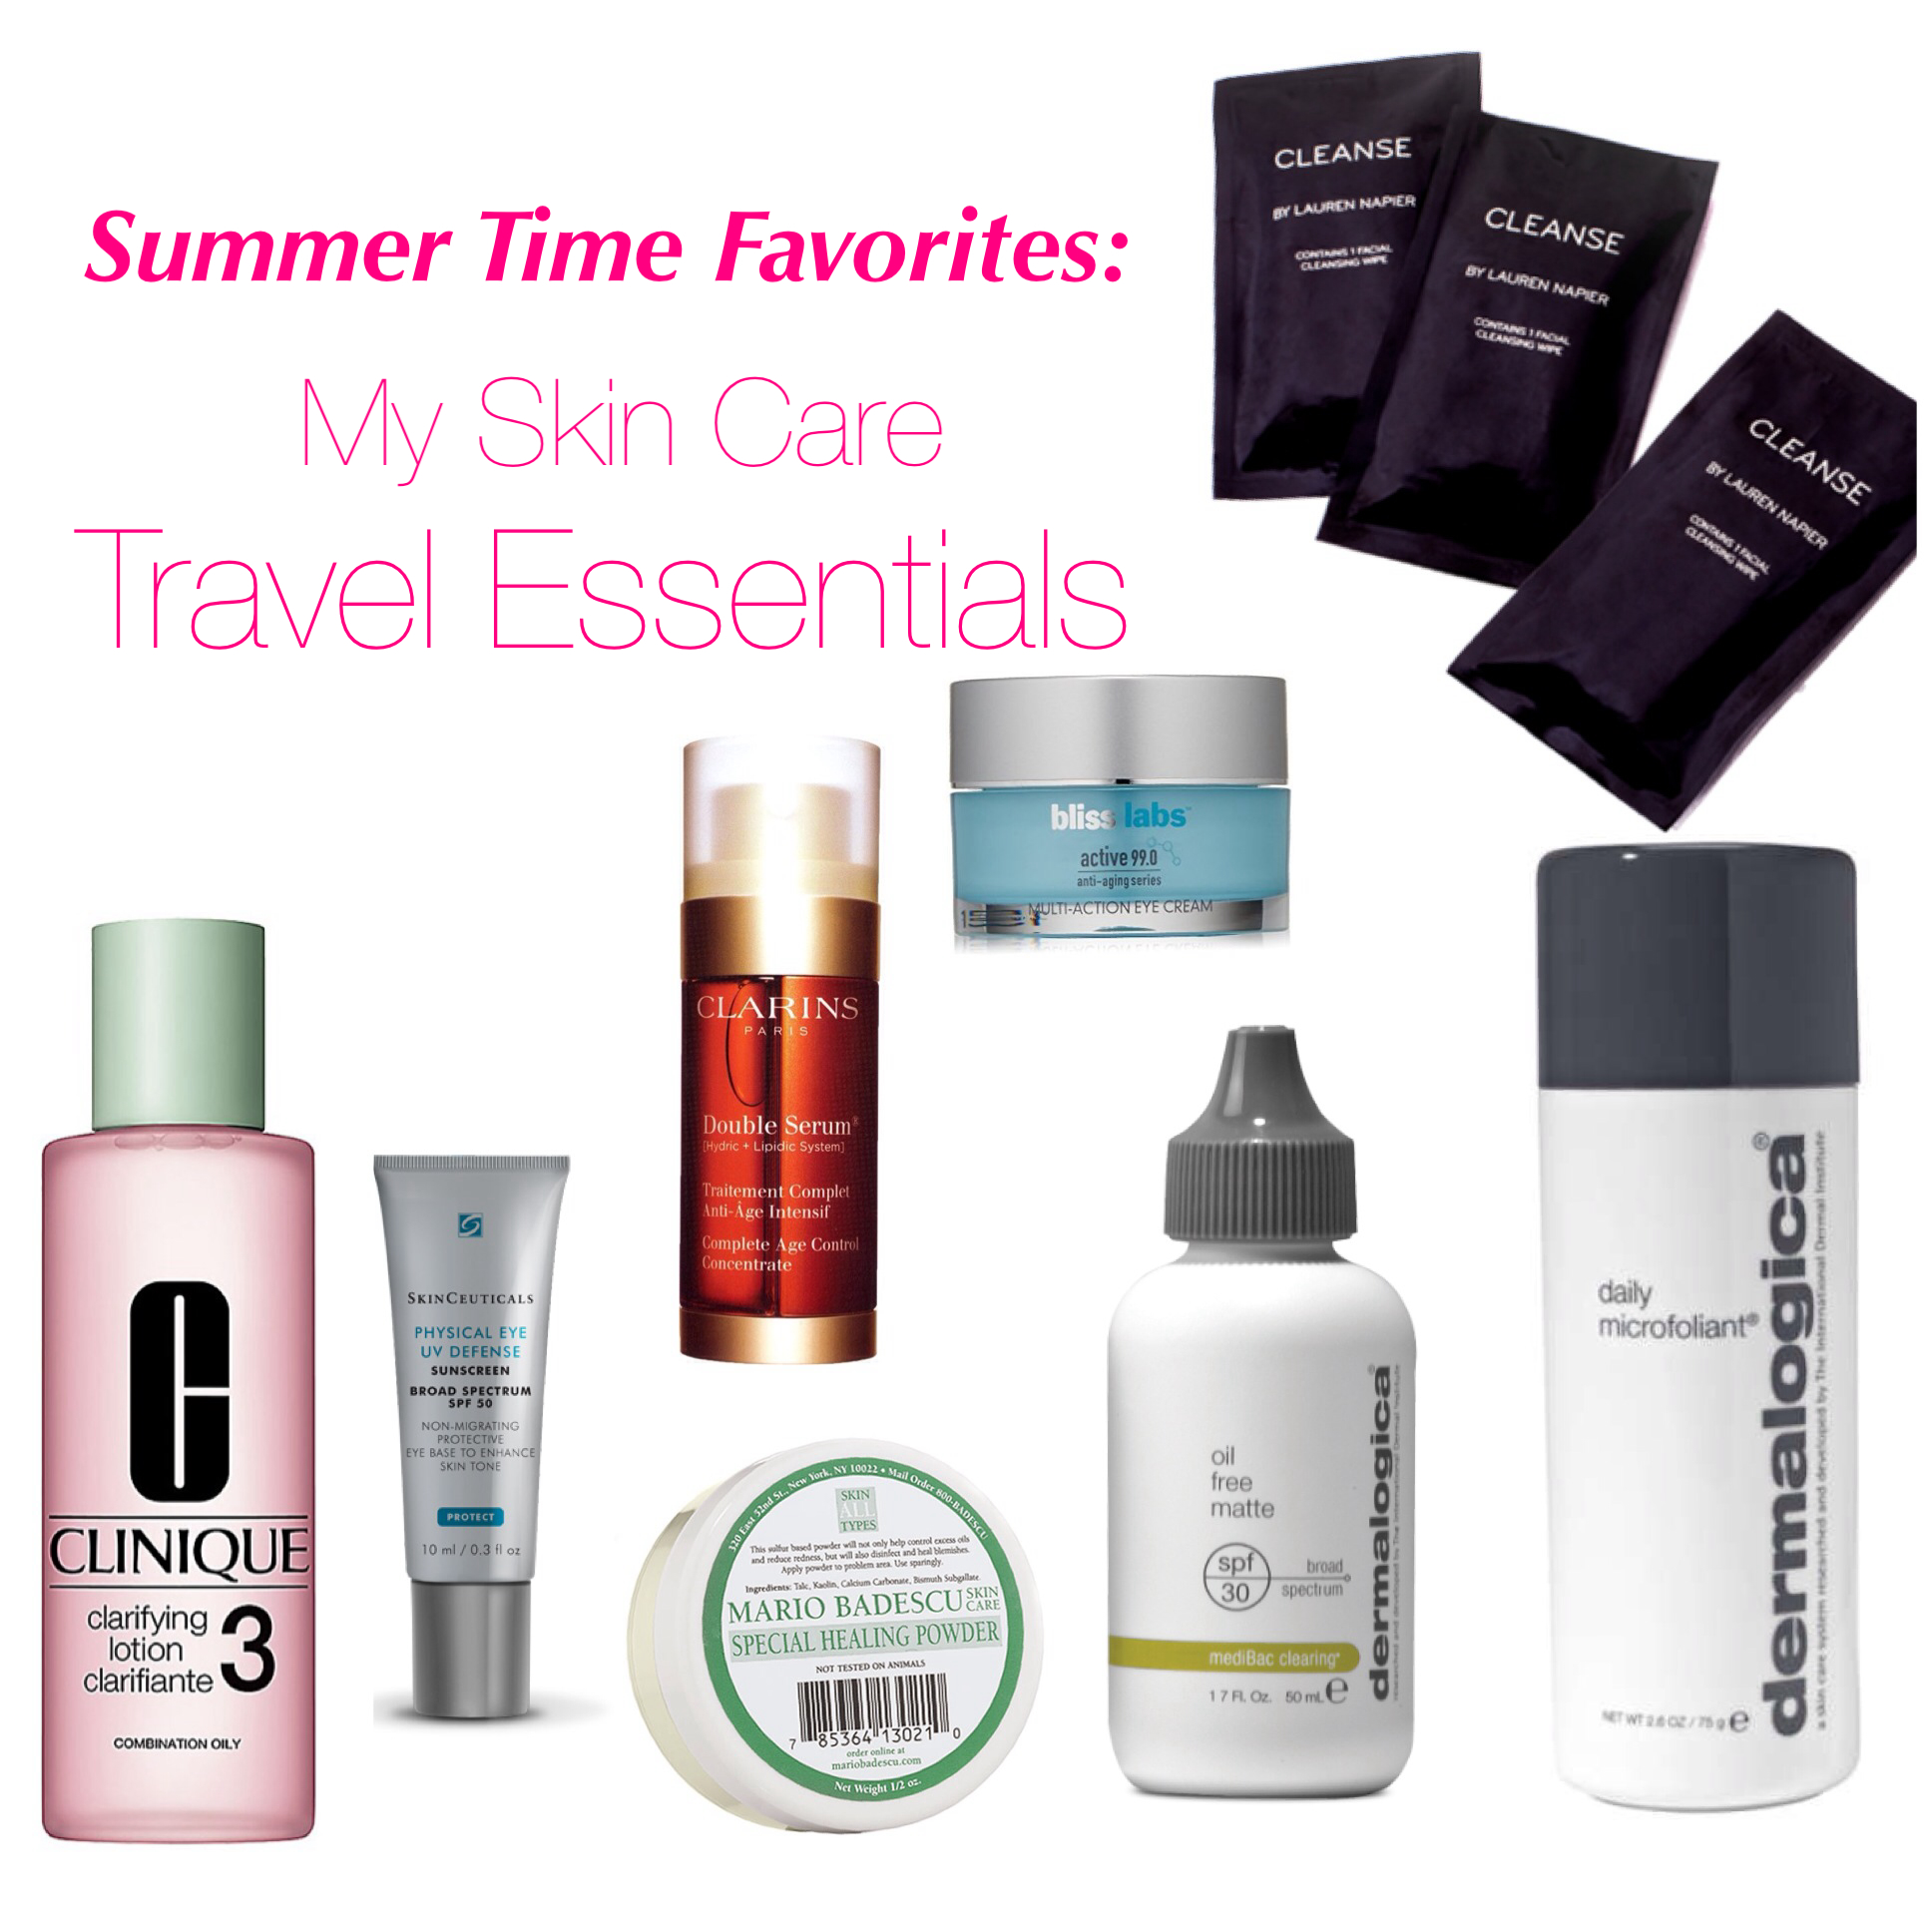 Skin Care Travel Essentials.JPG